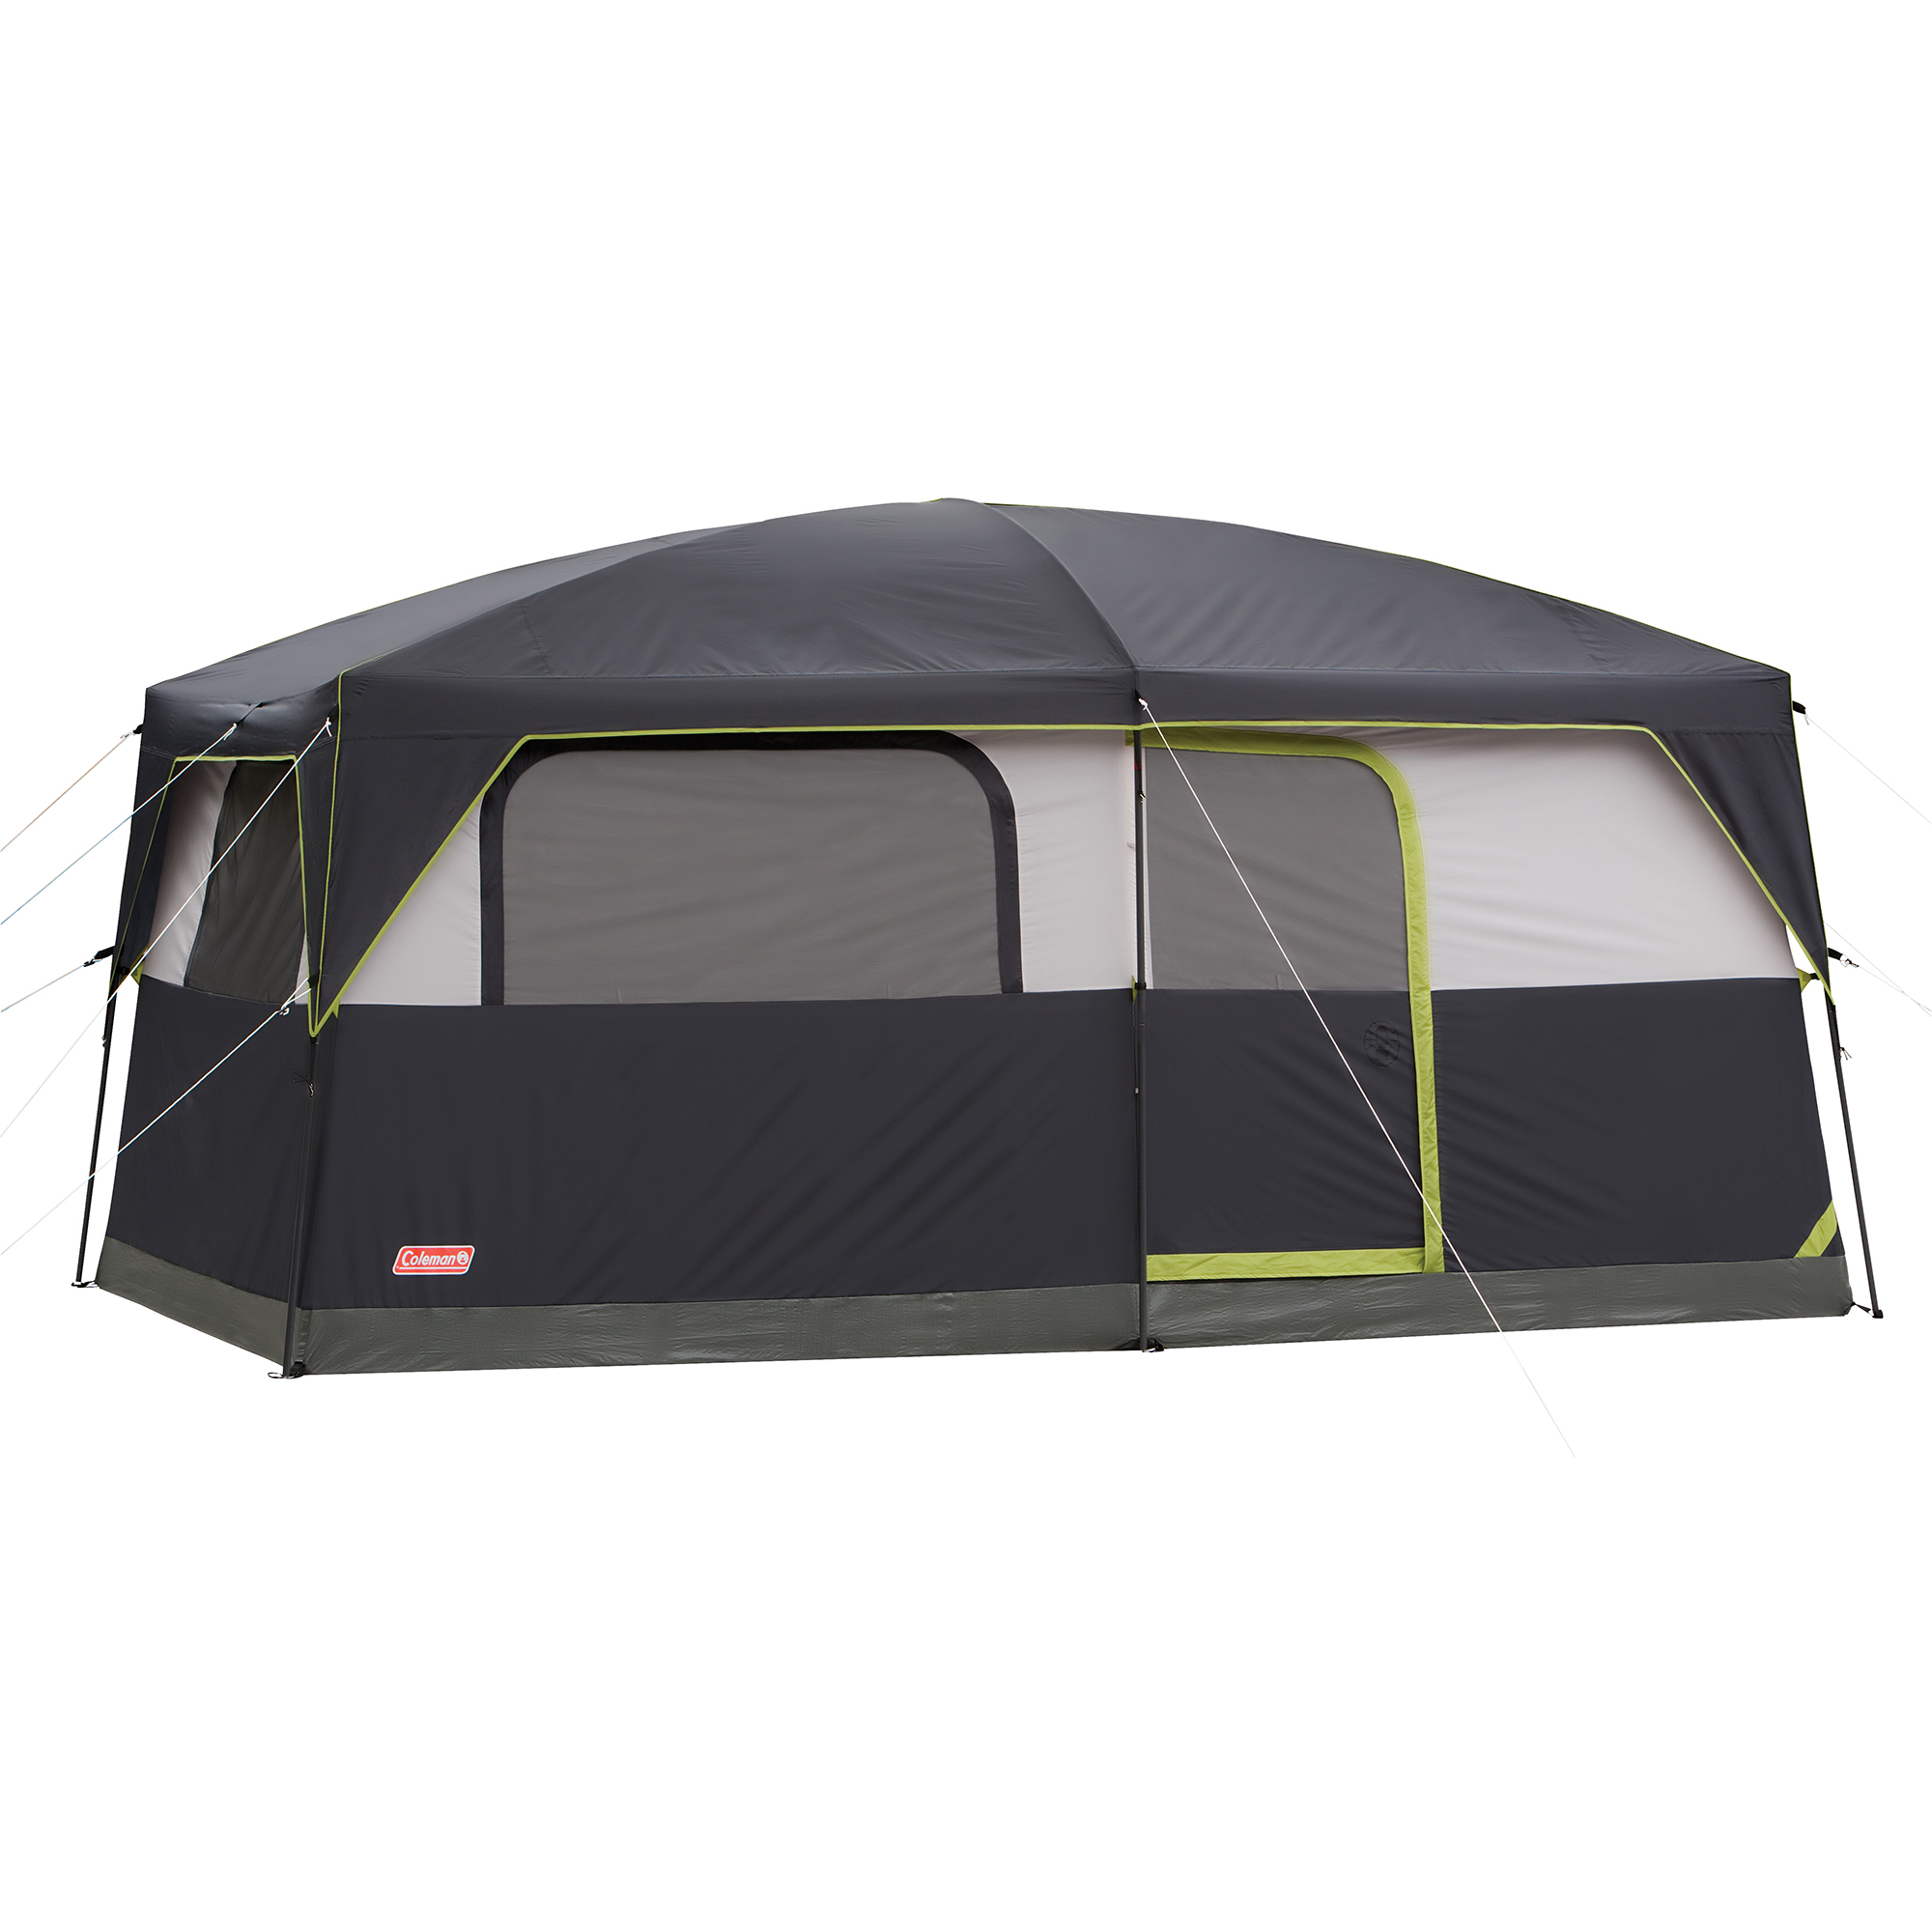 8-Person Cabin Tent with Built-In LED Light